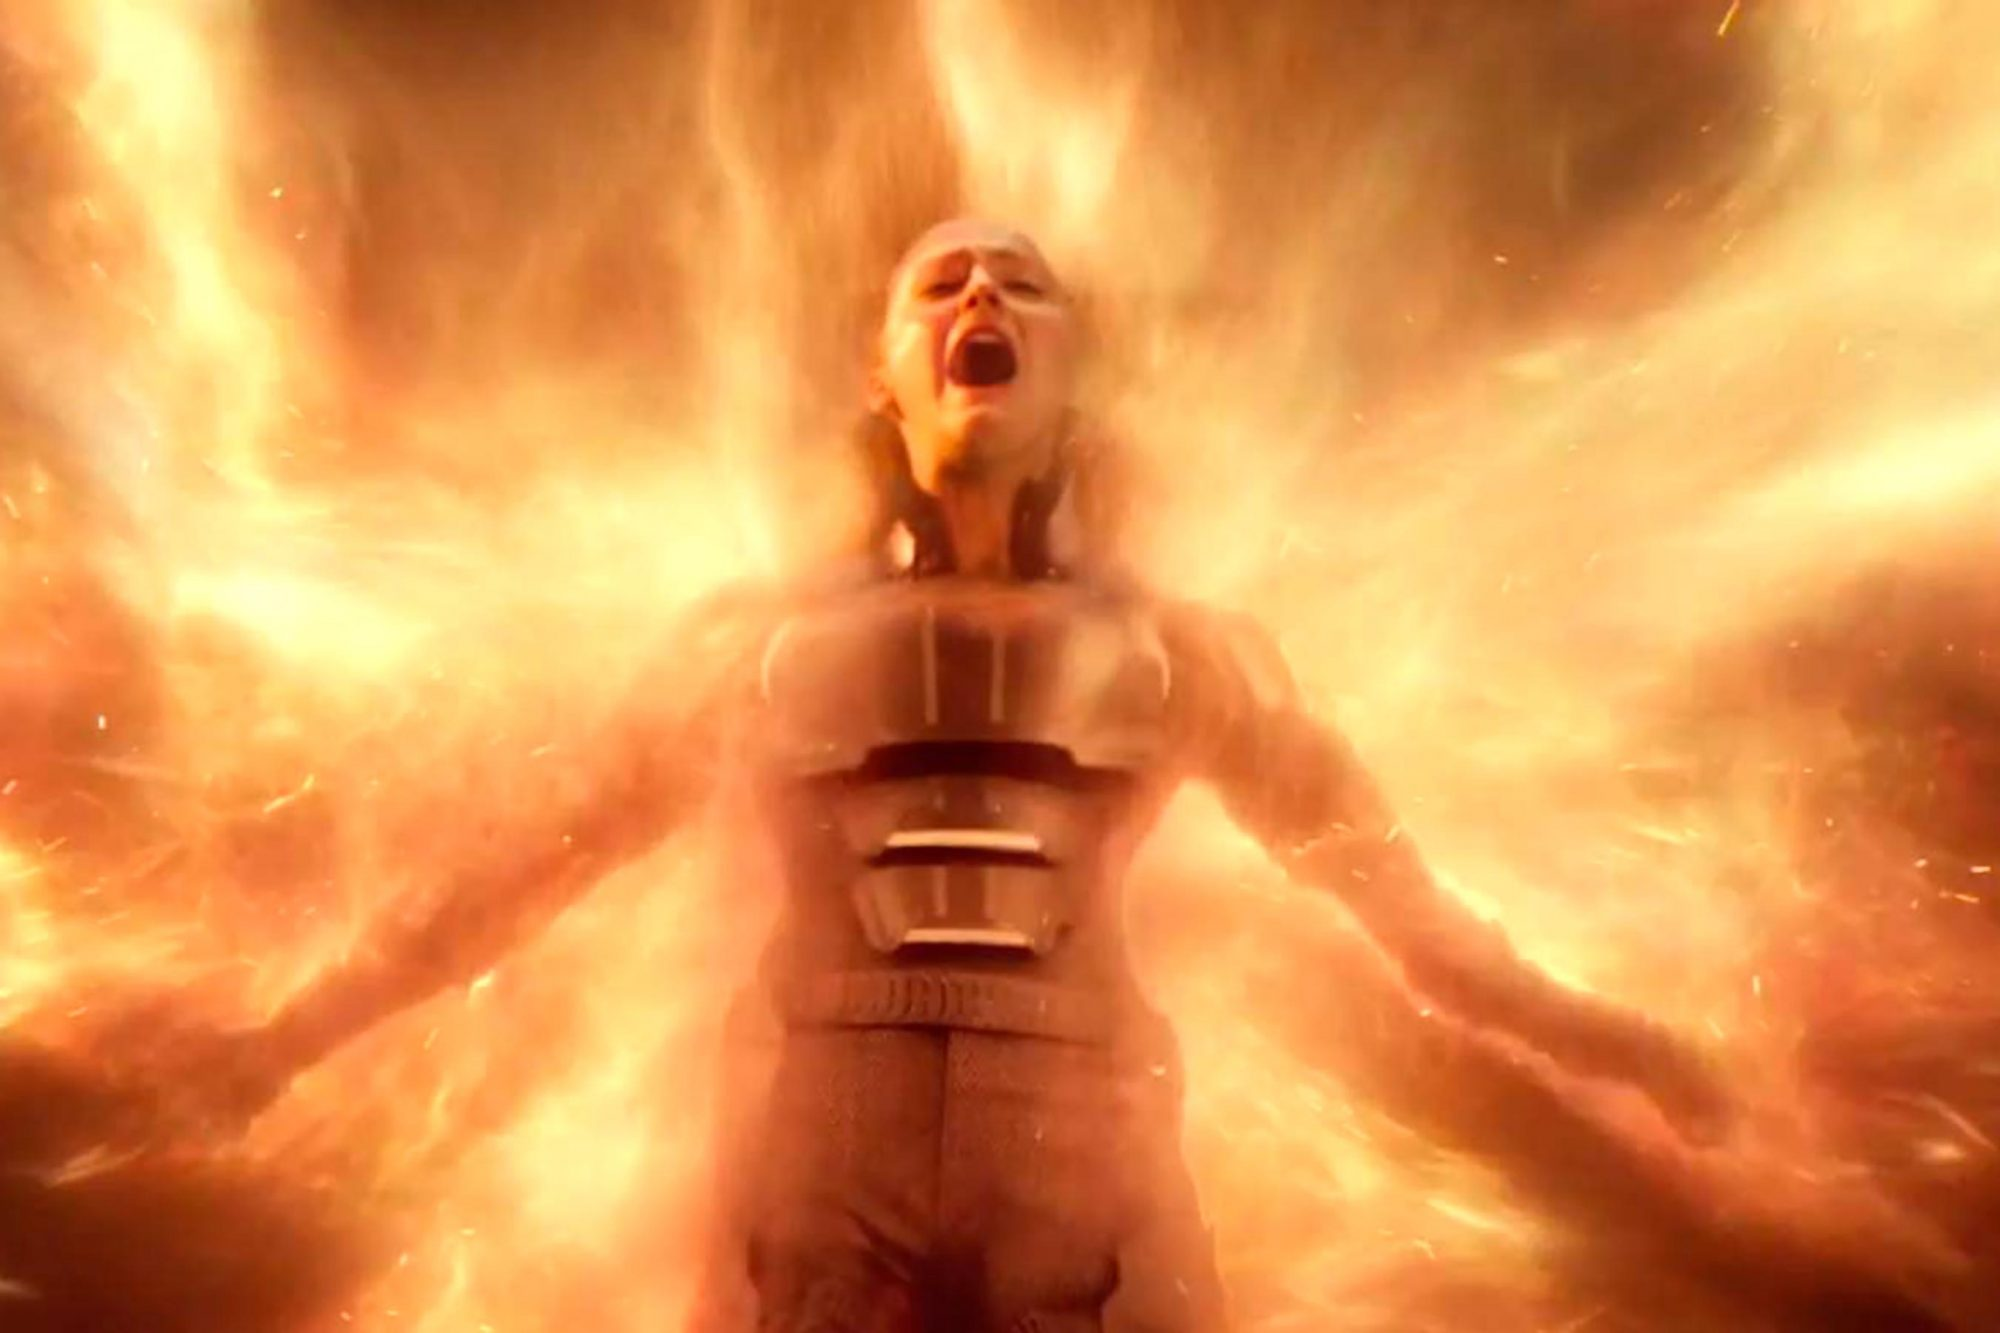 X-Men: Apocalypse (2016) Sophie Turner as Jean Grey / Phoenix CR: Marvel